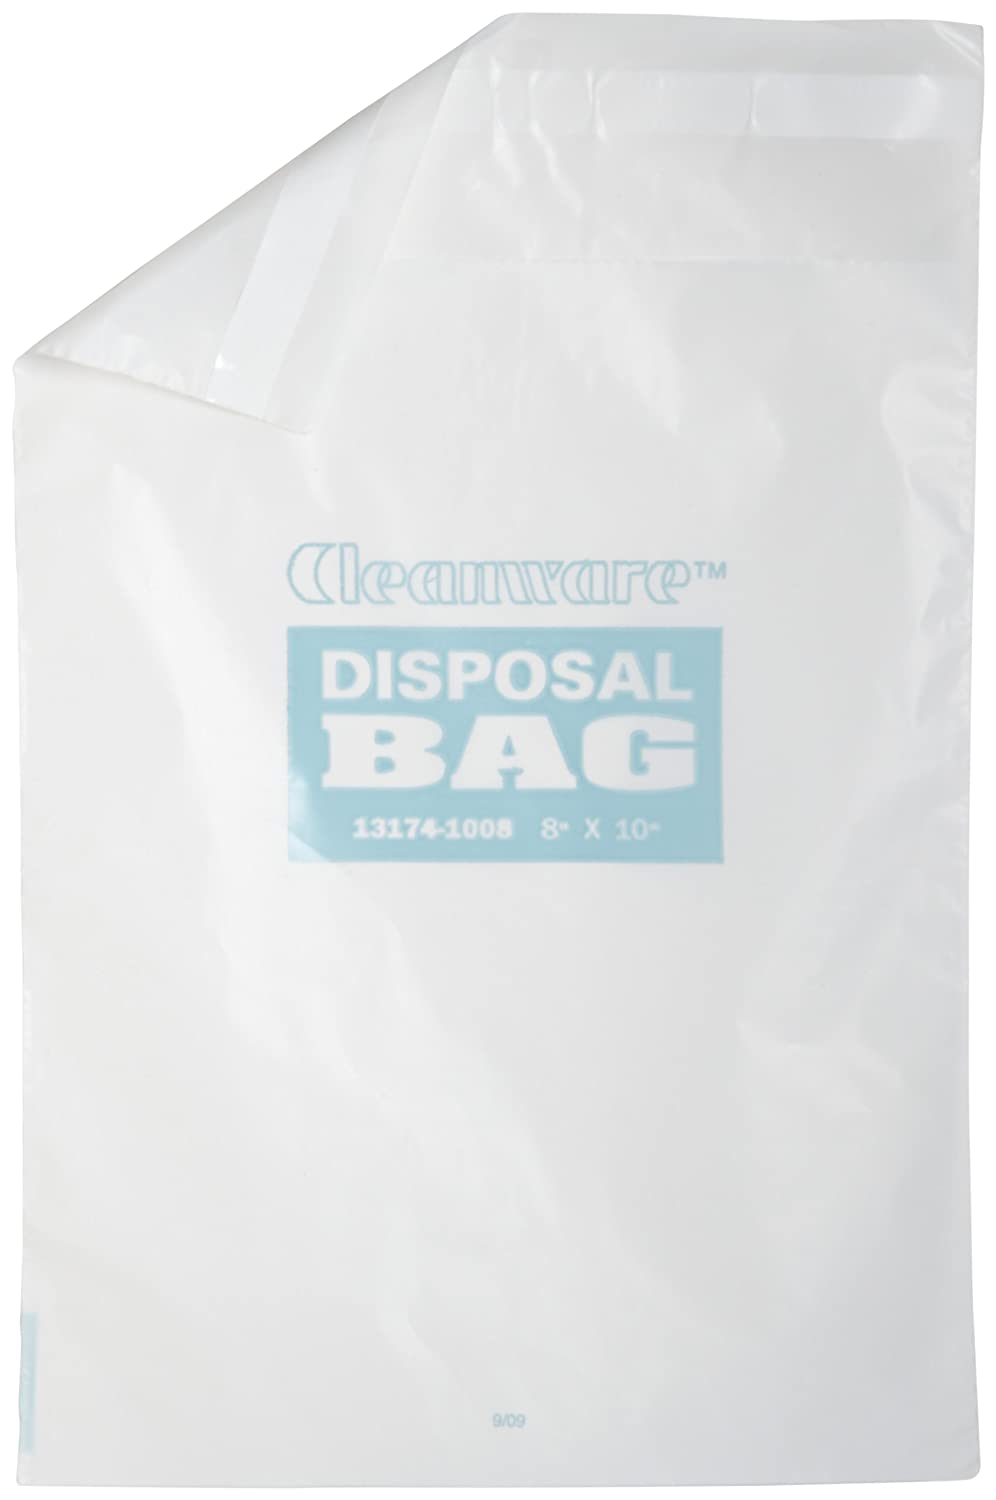 Bel-Art F13174-1008 Cleanware Polyethylene White Self Adhesive Waste Bags; Holds 3 lb, 8 in. W x 10 in. H, 1.0 mil Thick (Pack of 50) 131741008